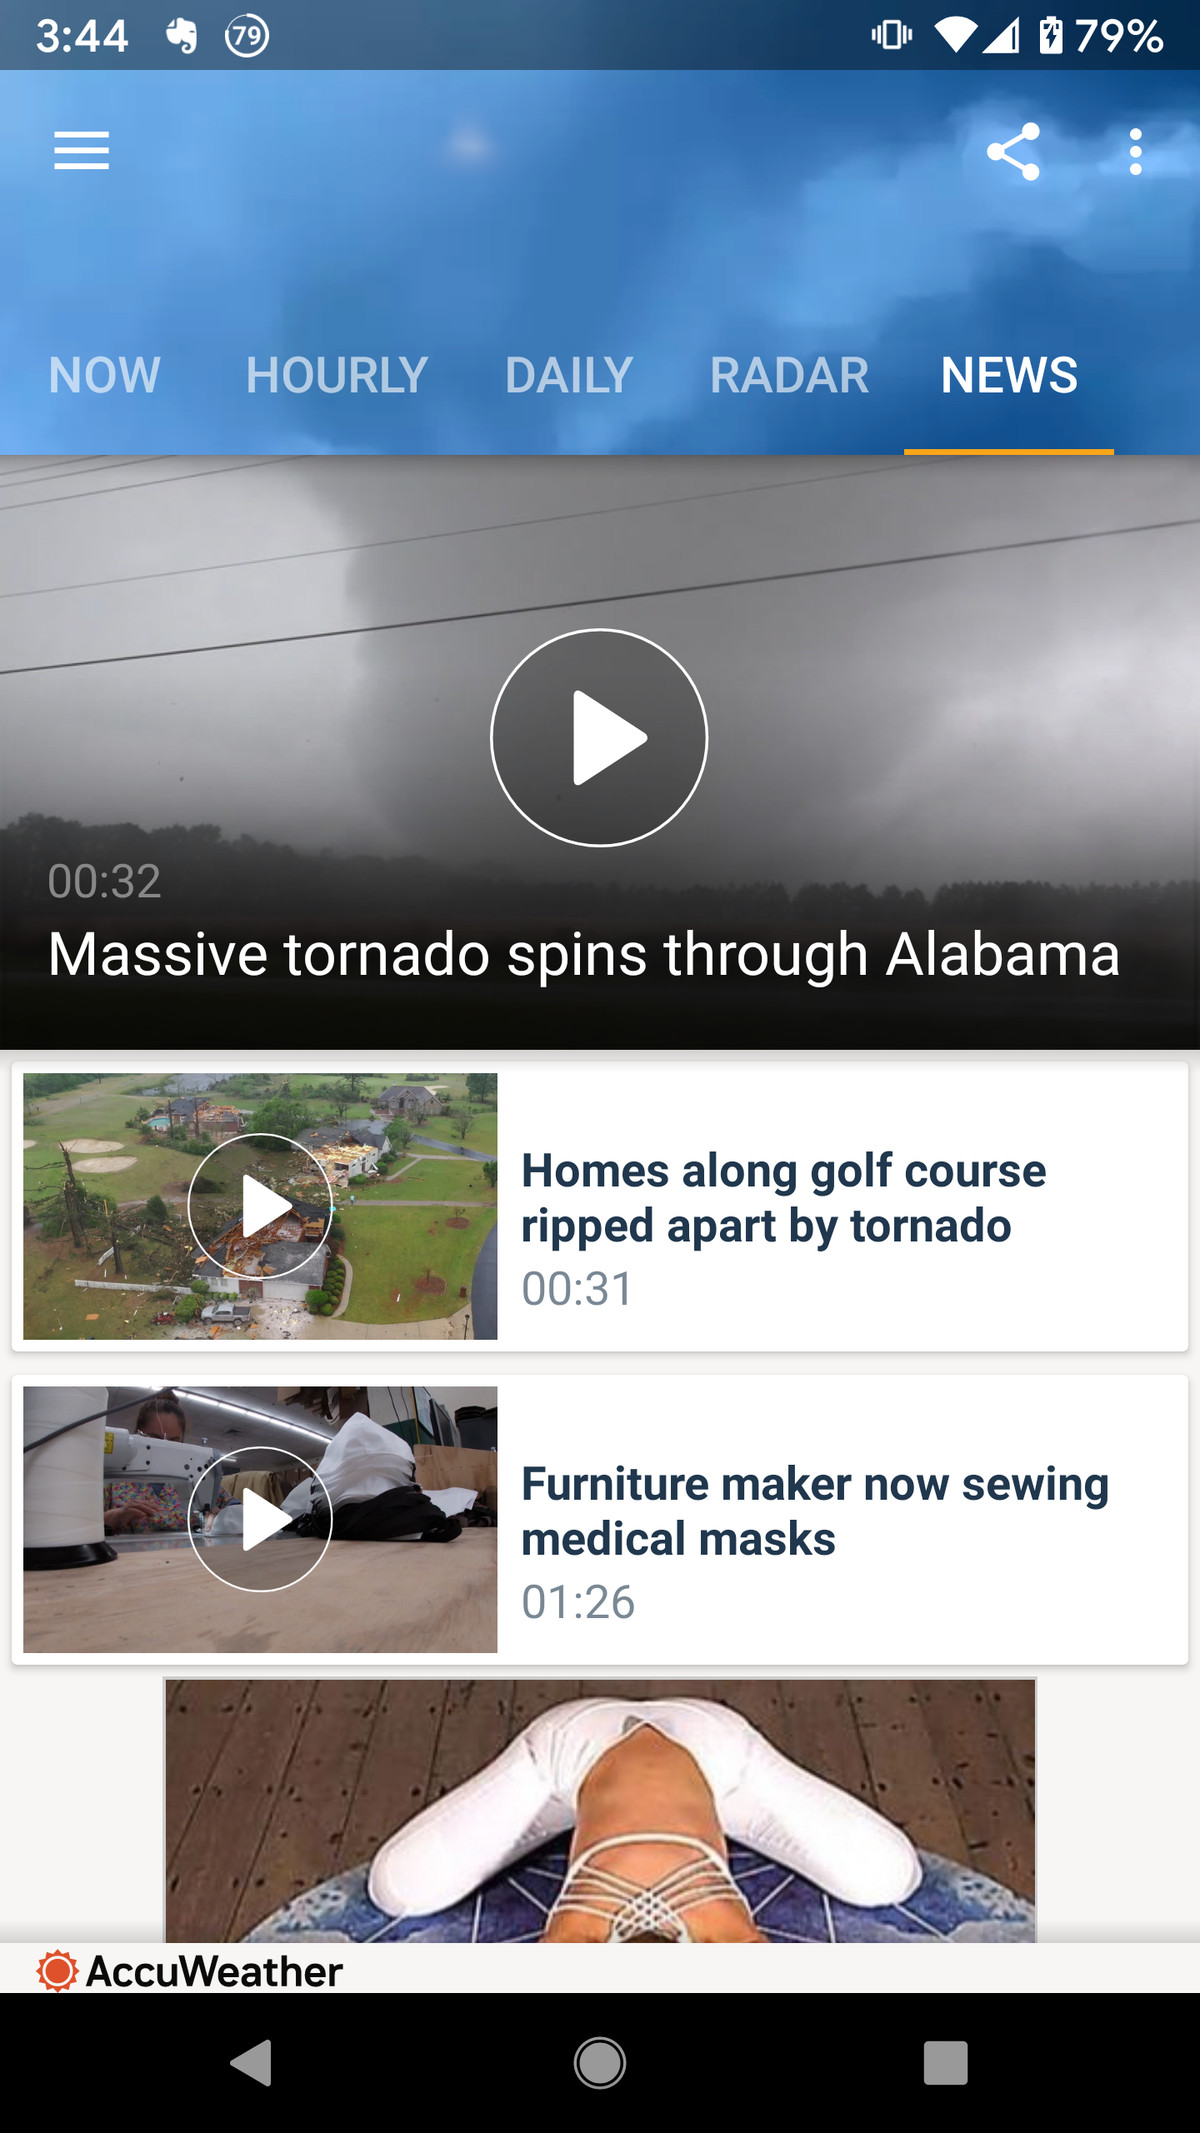 A news section offers videos on the latest weather-related disasters.